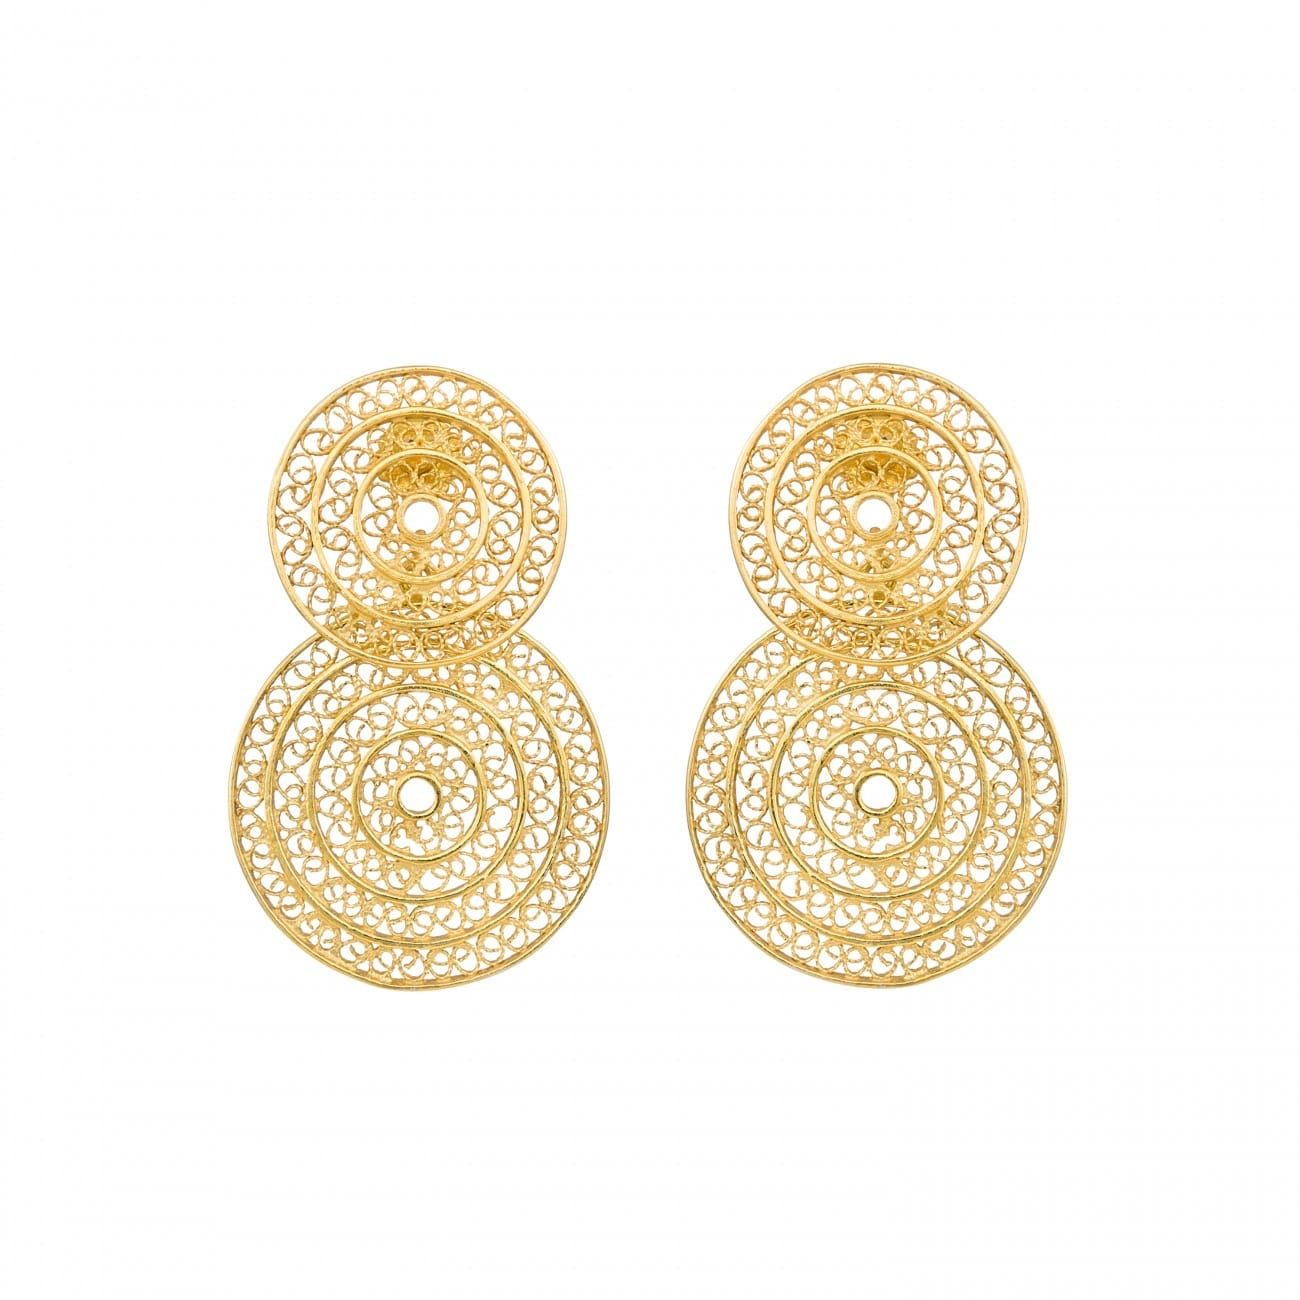 Earrings Two Circles 4,2 cm in Gold Plated Silver